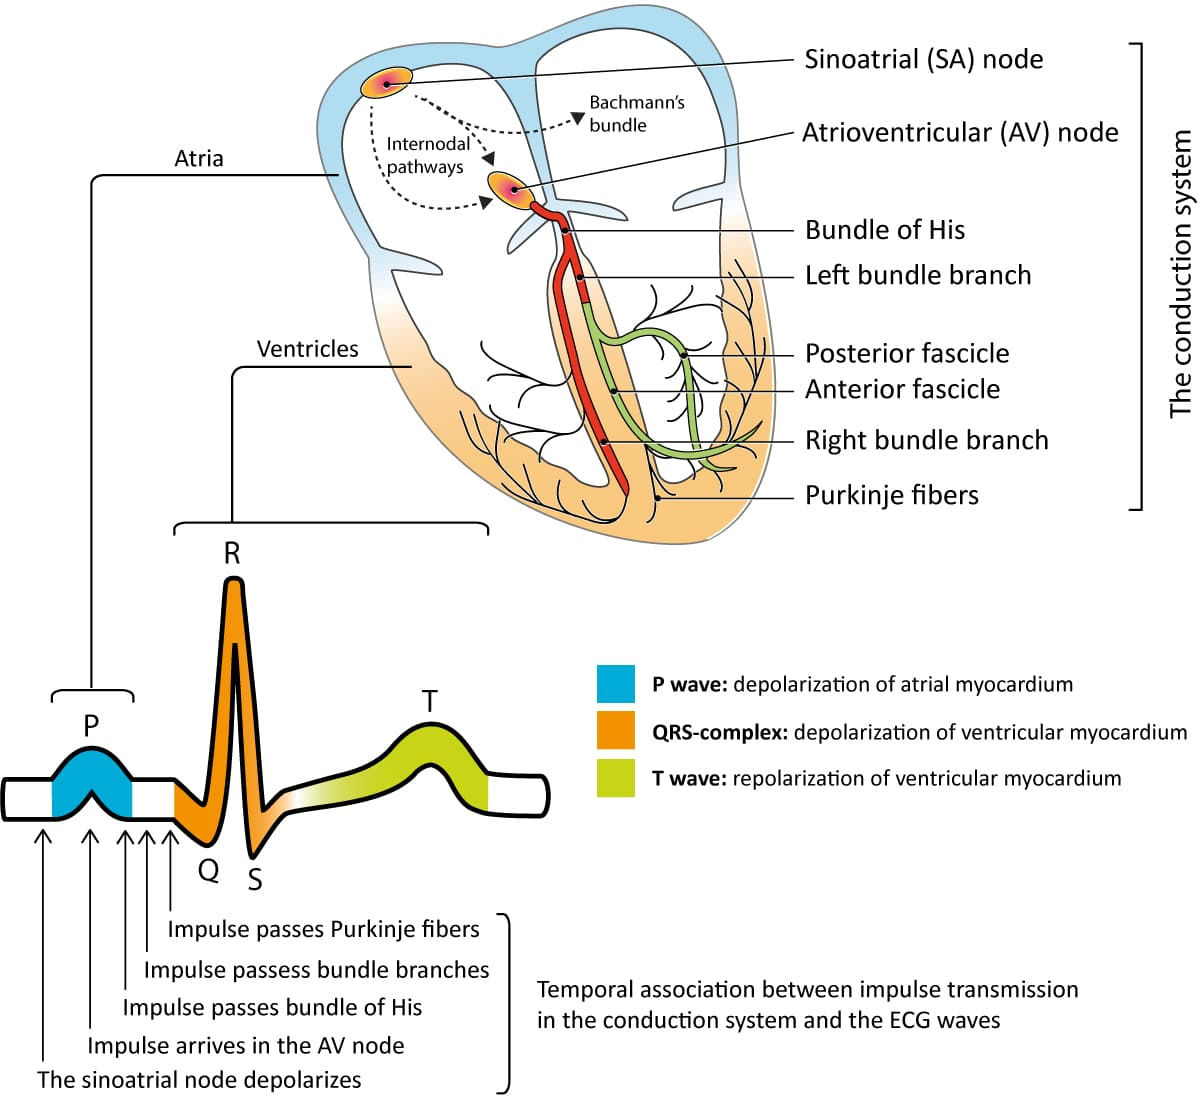 Figure 1. The cardiac cycle starts when cells in the sinoatrial node discharges an action potential that spreads as an electrical impulse through the atria and – via the atrioventricular node – to the ventricles. As the impulse spreads through the myocardium, it activates the cells which respond by contracting. The action potential generates electrical currents which gives rise to the classical ECG waveforms presented here. Activation of the atria is reflected as the P-wave and activation of the ventricles results in the QRS complex. The T-wave reflects the recovery (repolarization) of the ventricles. Note that the ECG rarely shows atrial recovery (repolarization) since it coincides with ventricular depolarization (i.e QRS complex), which has much stronger electrical potentials.